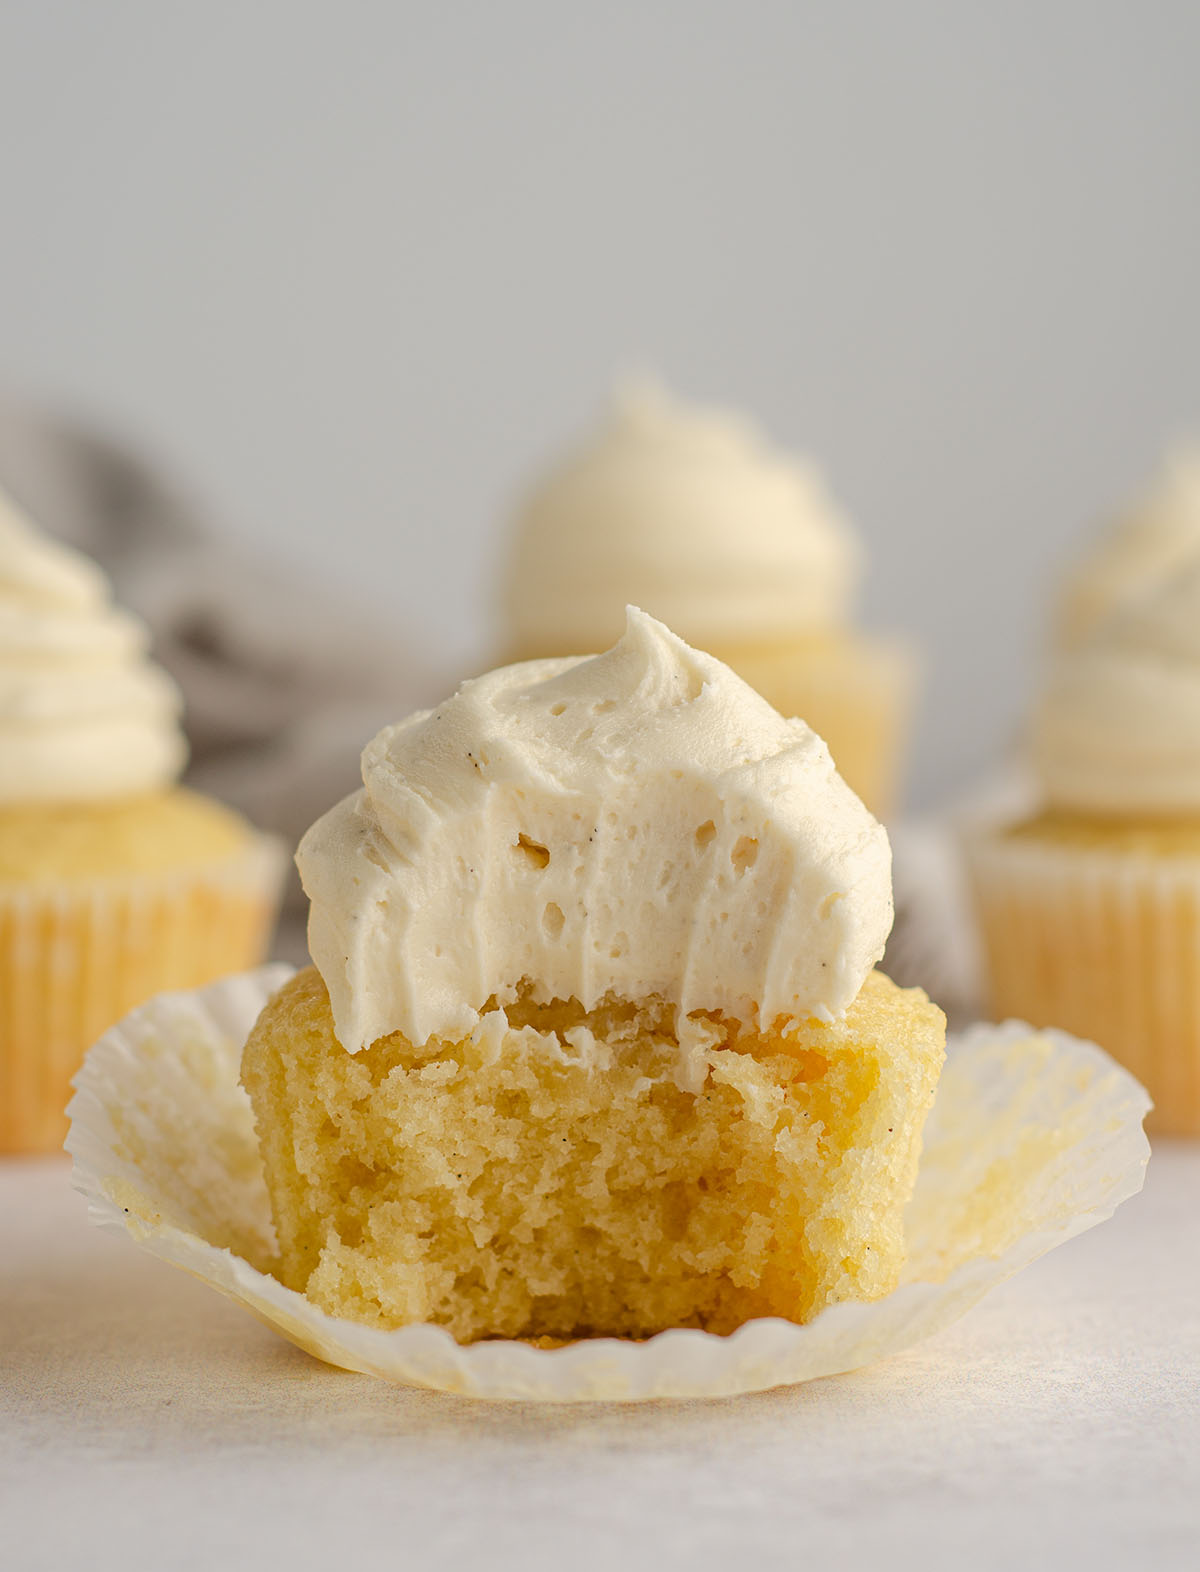 vanilla bean cupcake with vanilla bean buttercream on top sitting in a cupcake liner with a bite taken out of it